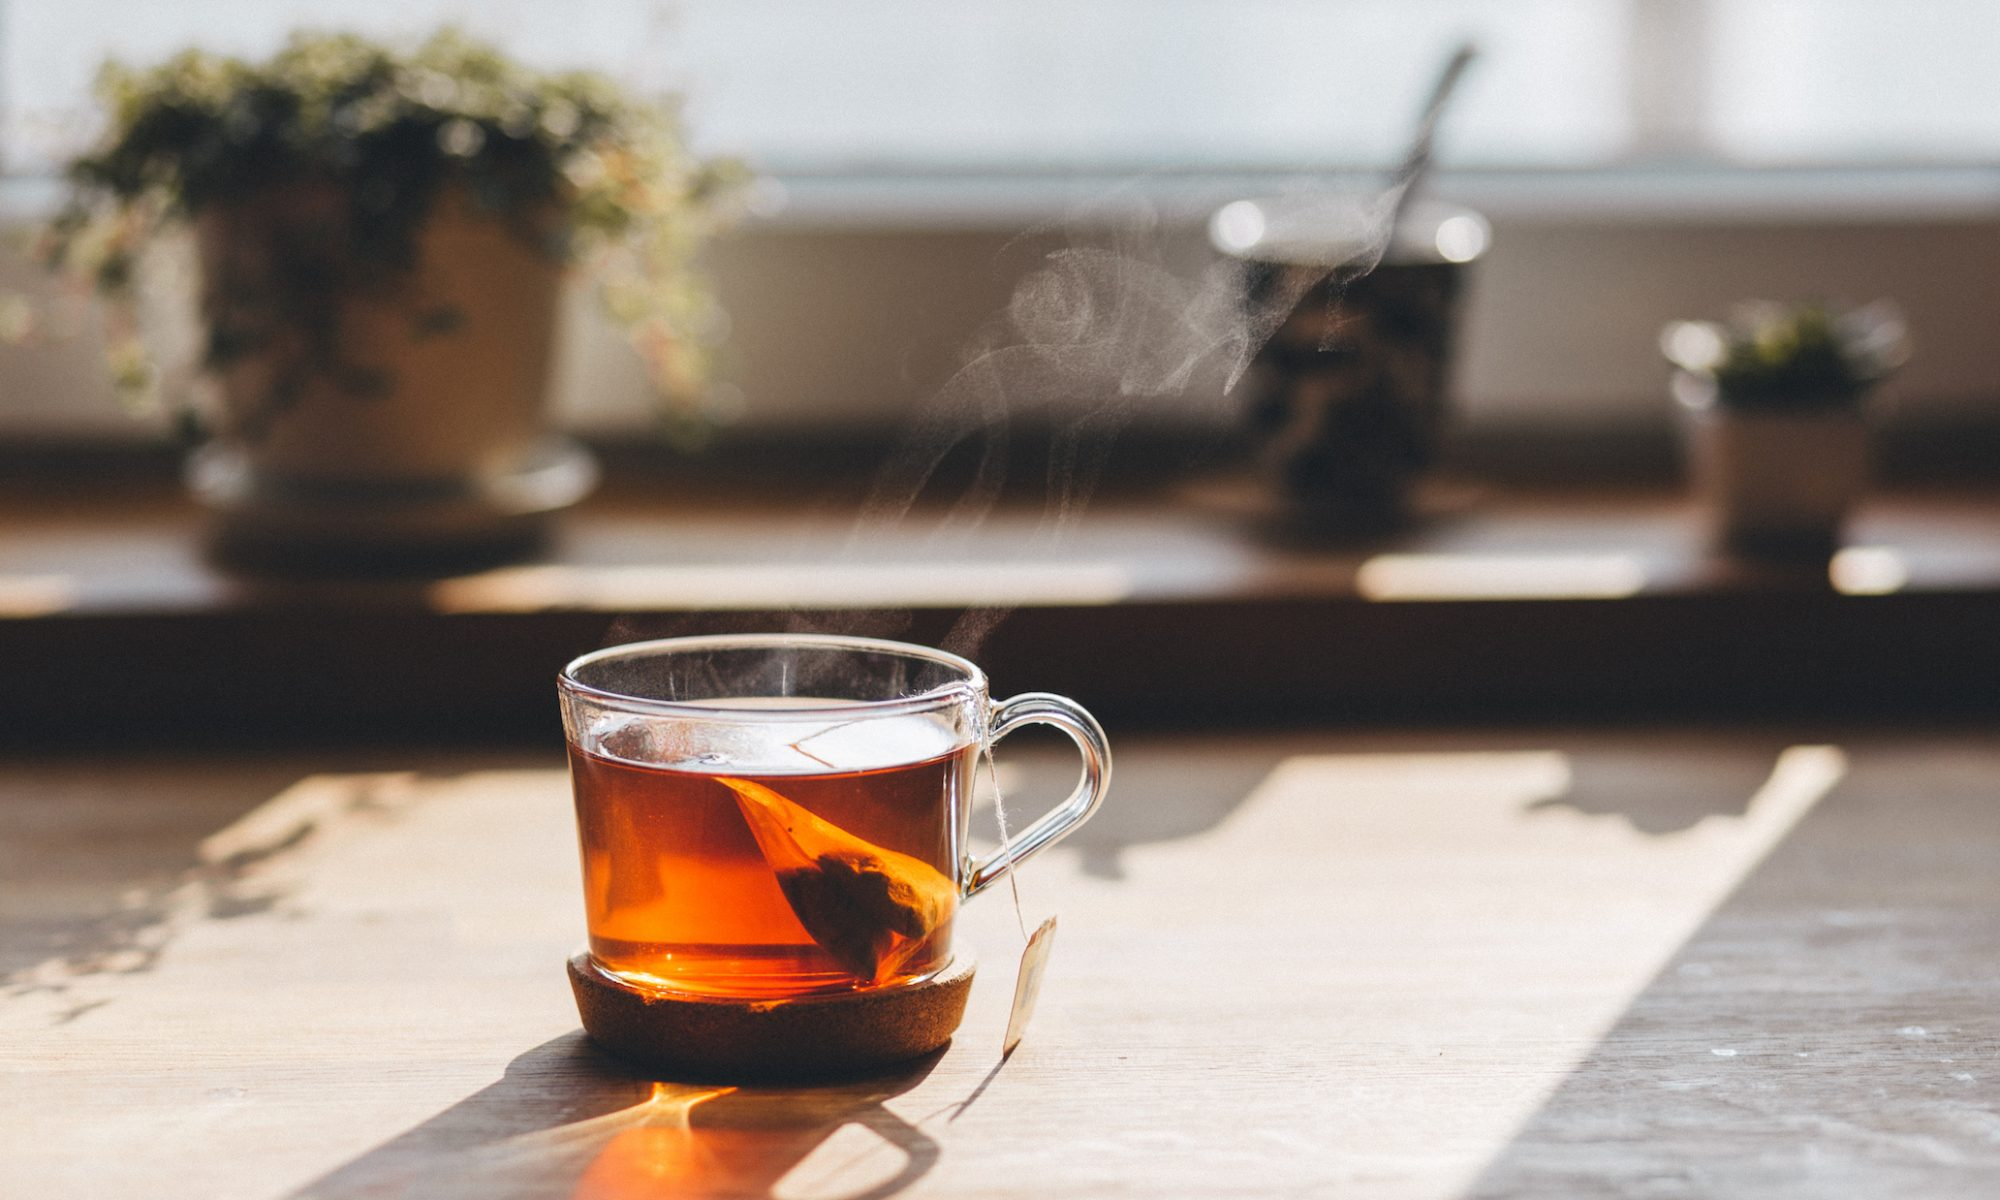 5 Steps to Detoxify your Home cup of tea